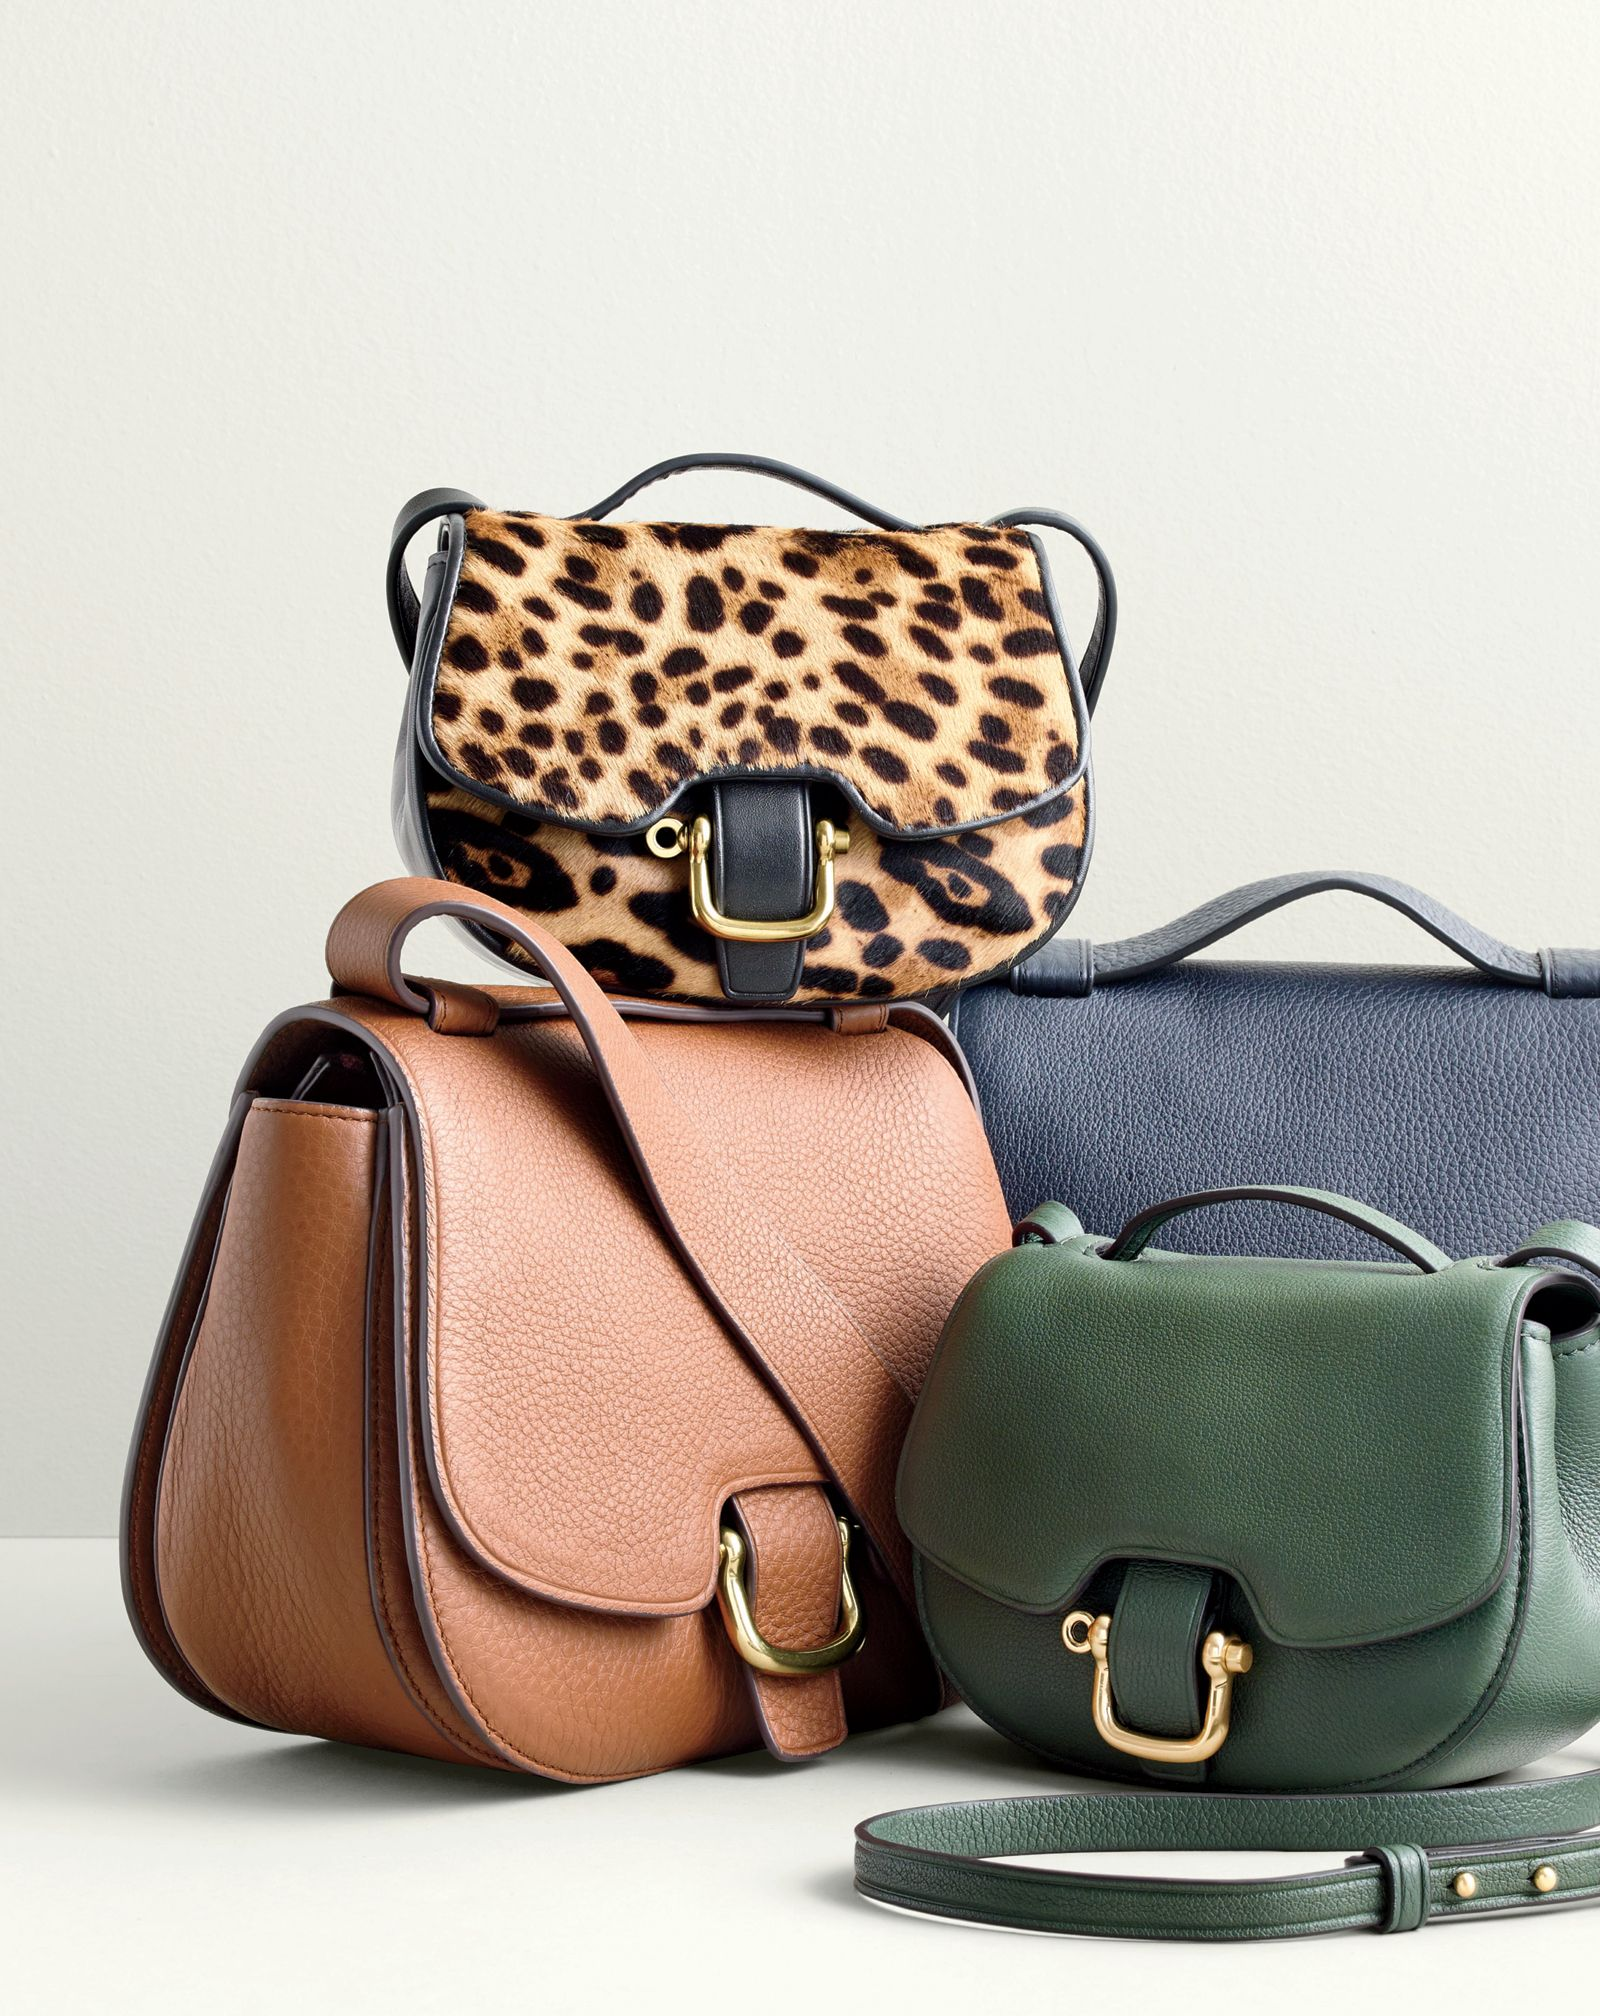 The J Crew Rider Collection